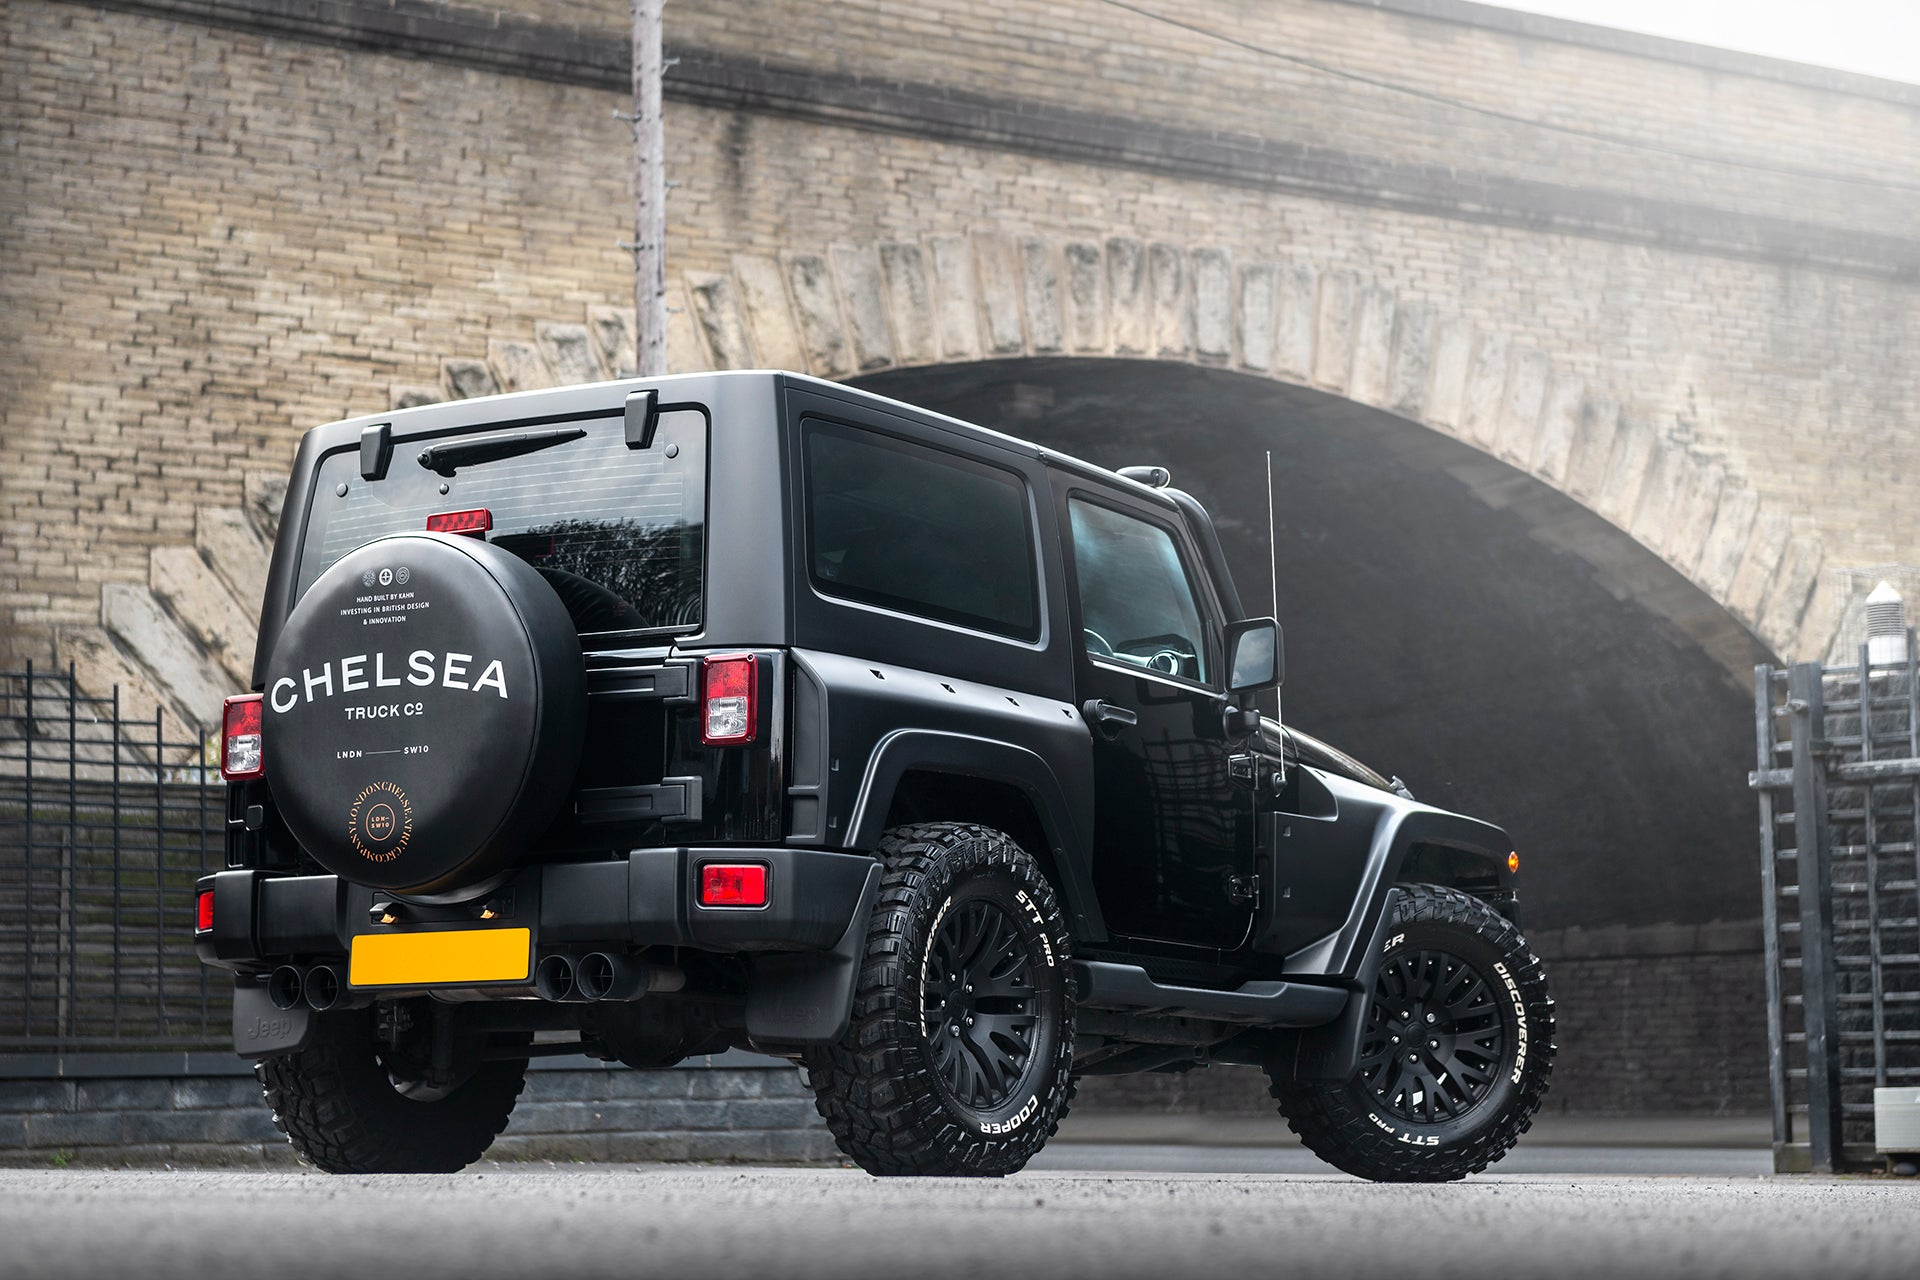 Jeep Wrangler Black Hawk